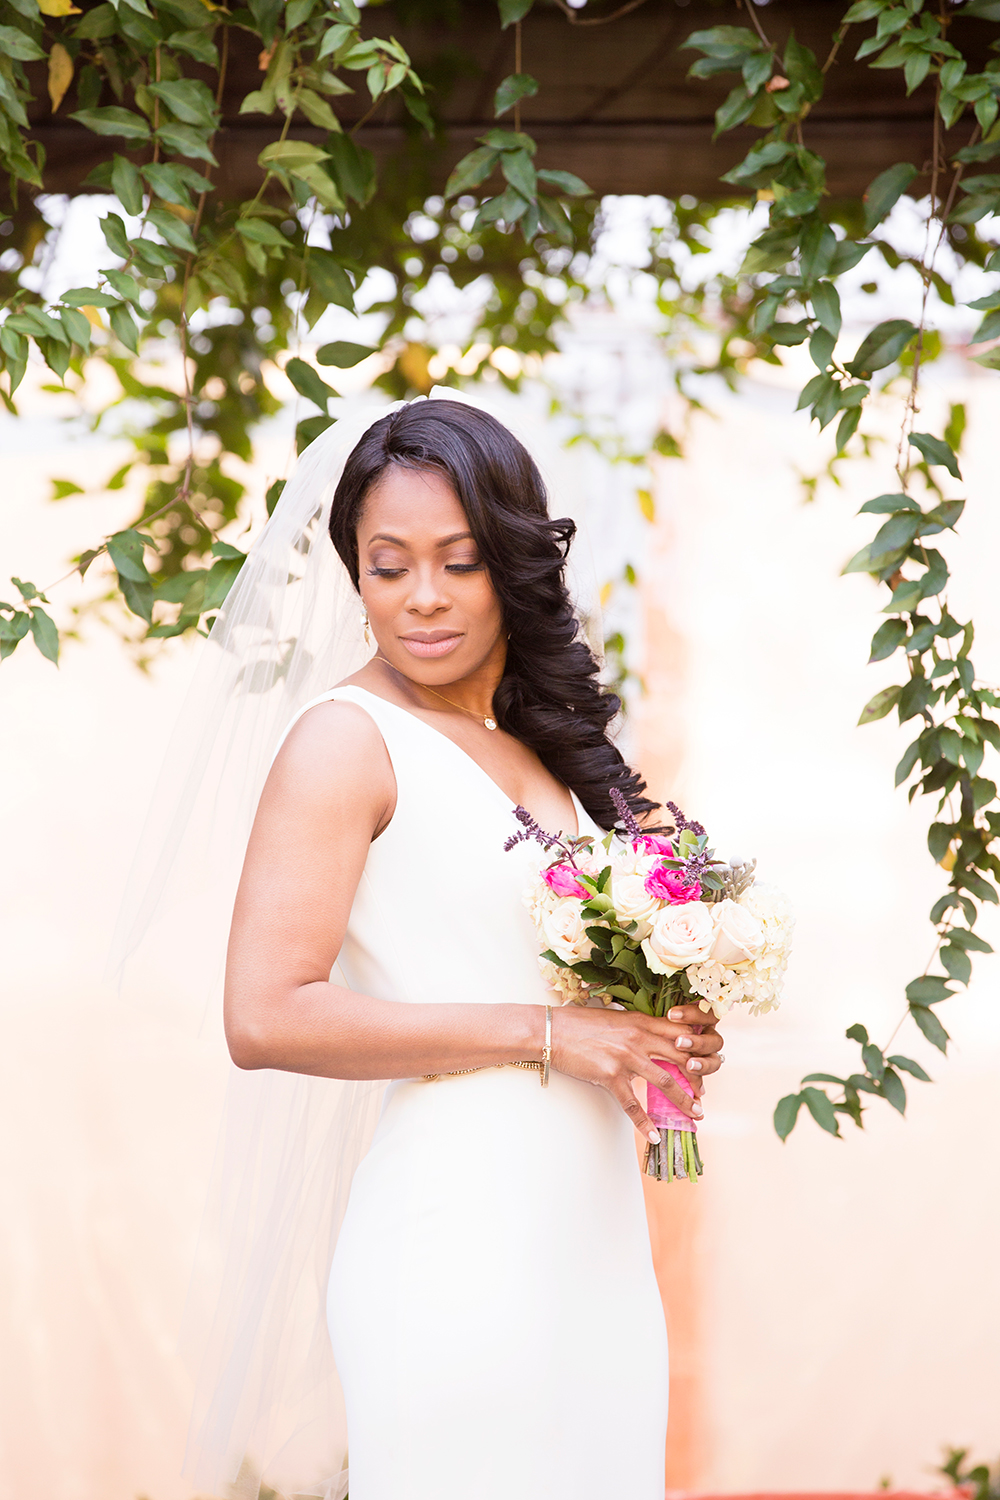 Where to Buy your Wedding Dress In Richmond Virginia RVA wedding dresses richmond va BHLDN has a lot of different styles to browse from romantic to bohemian to modern Brought to you by Anthropologie this branch focuses entirely on bridal